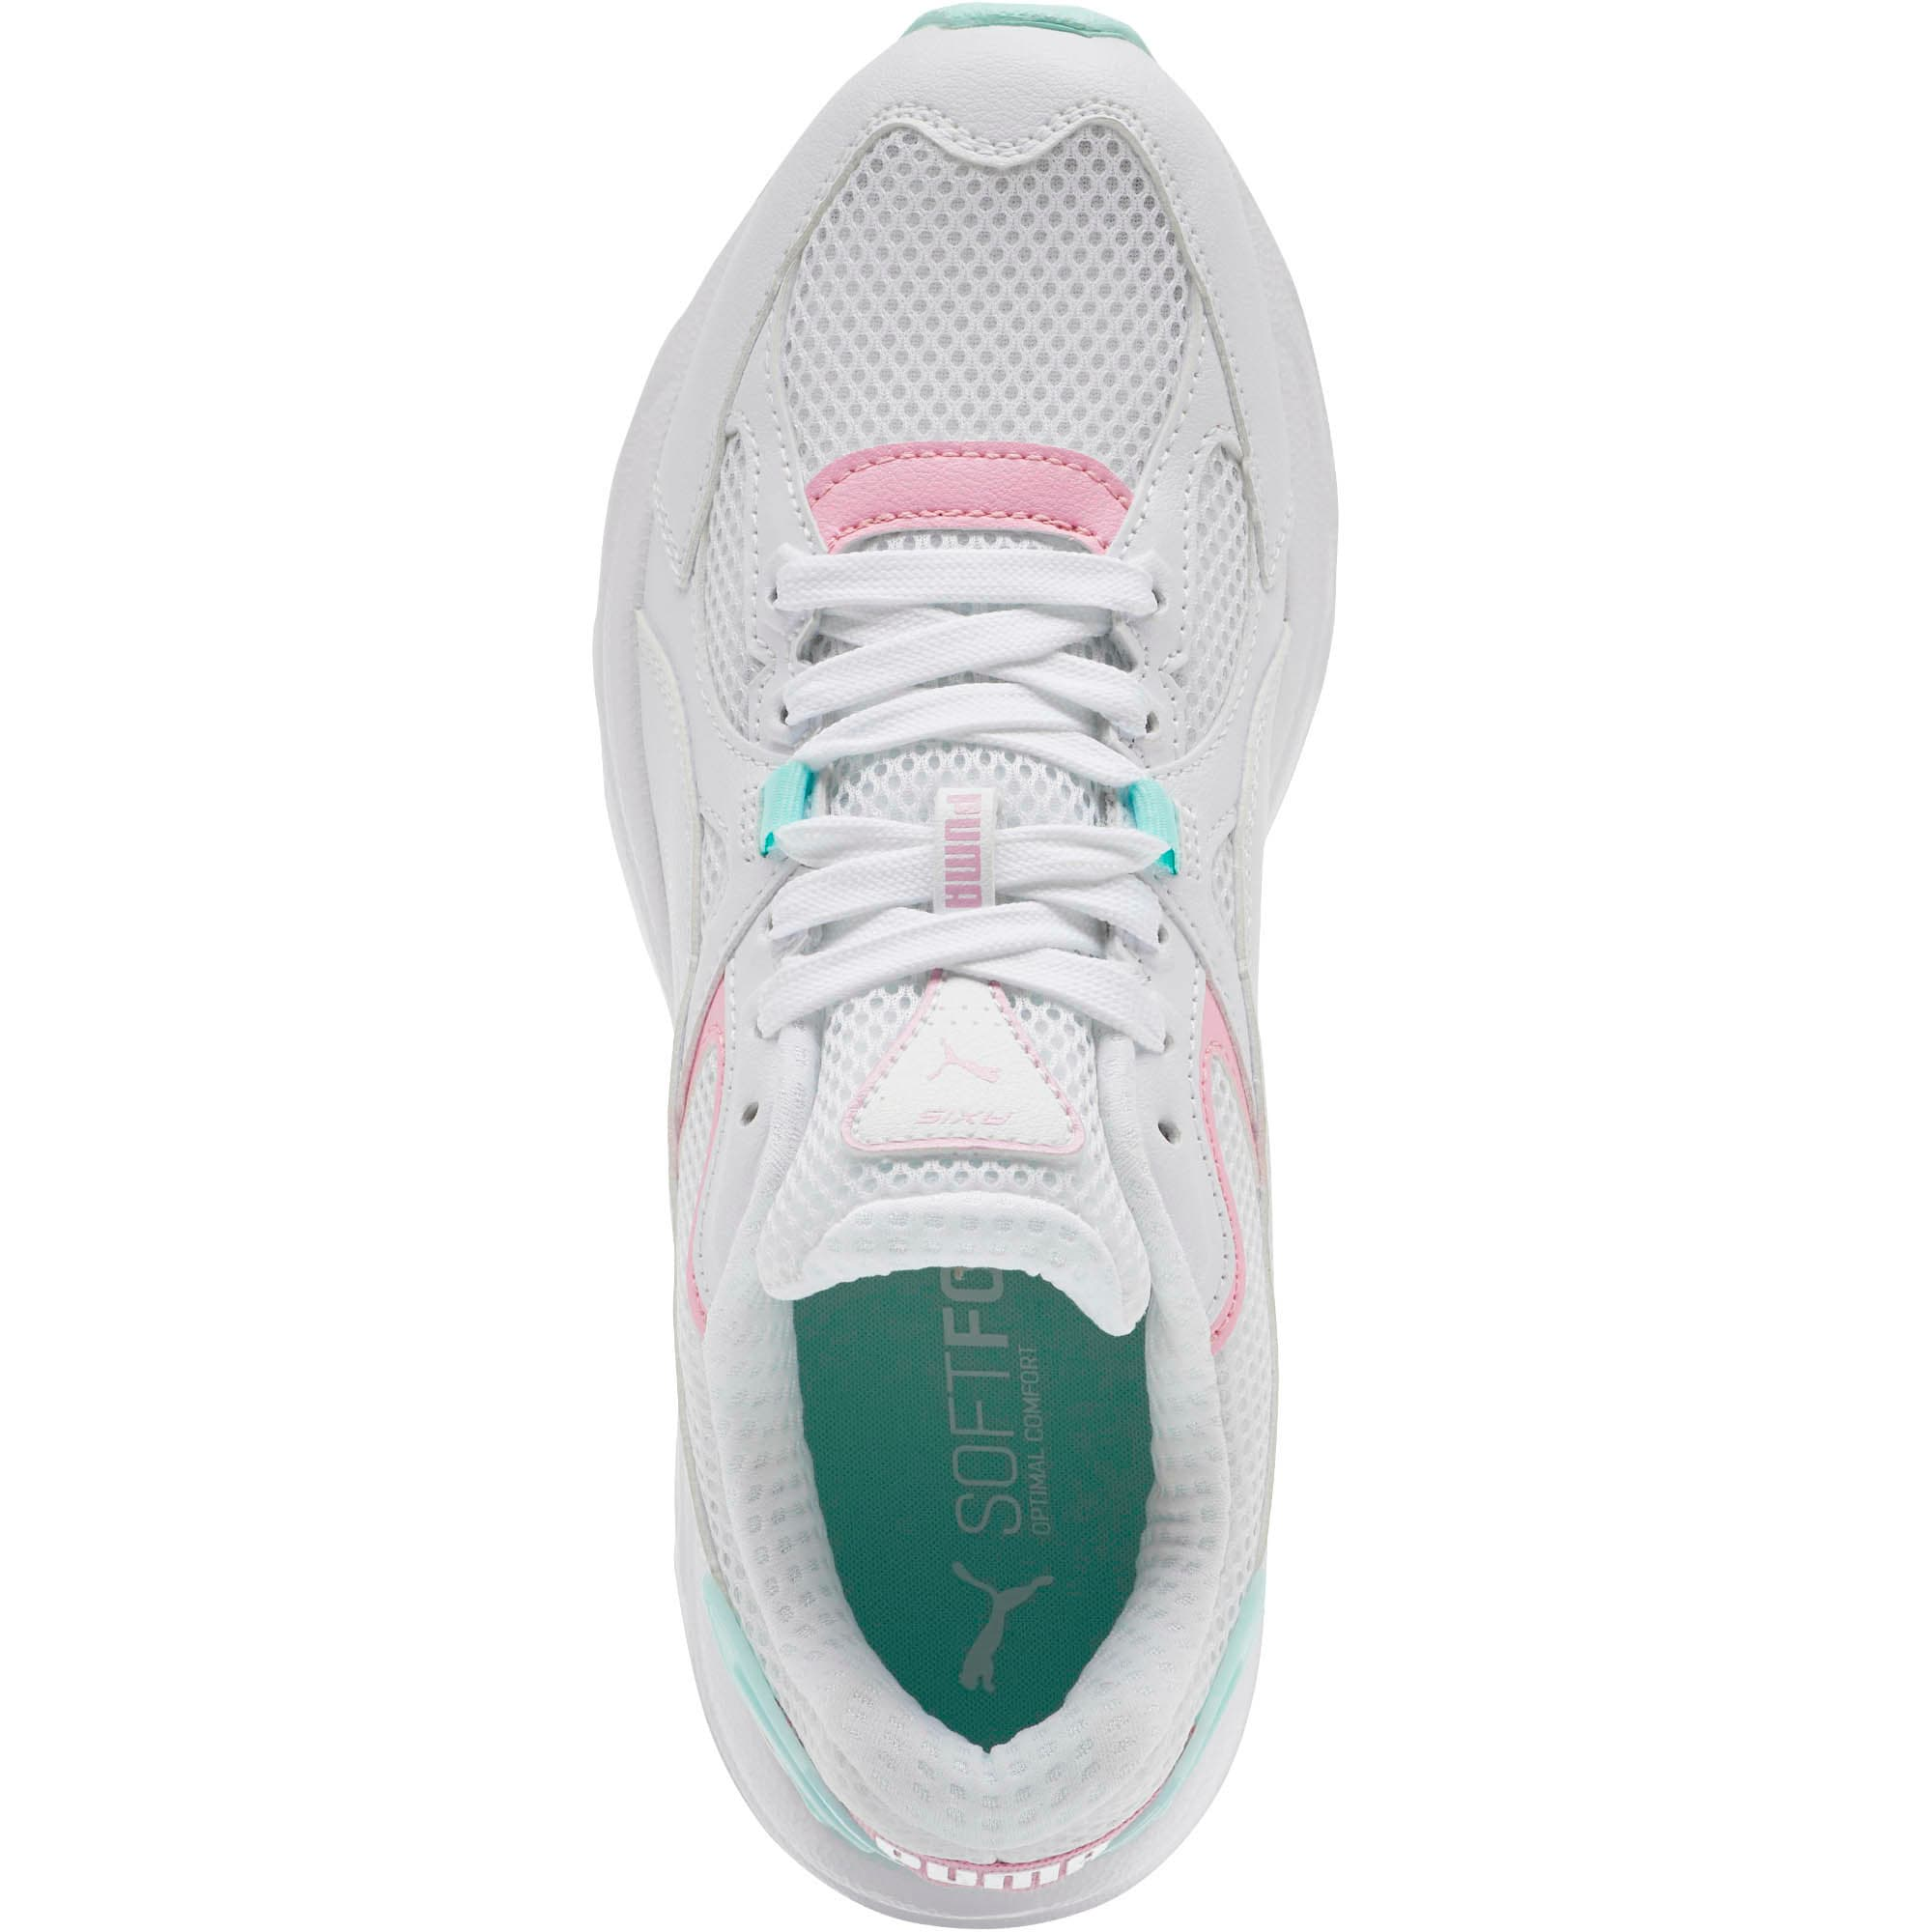 Axis Plus 90s Women's Sneakers, White-Pale Pink-Fair Aqua, large